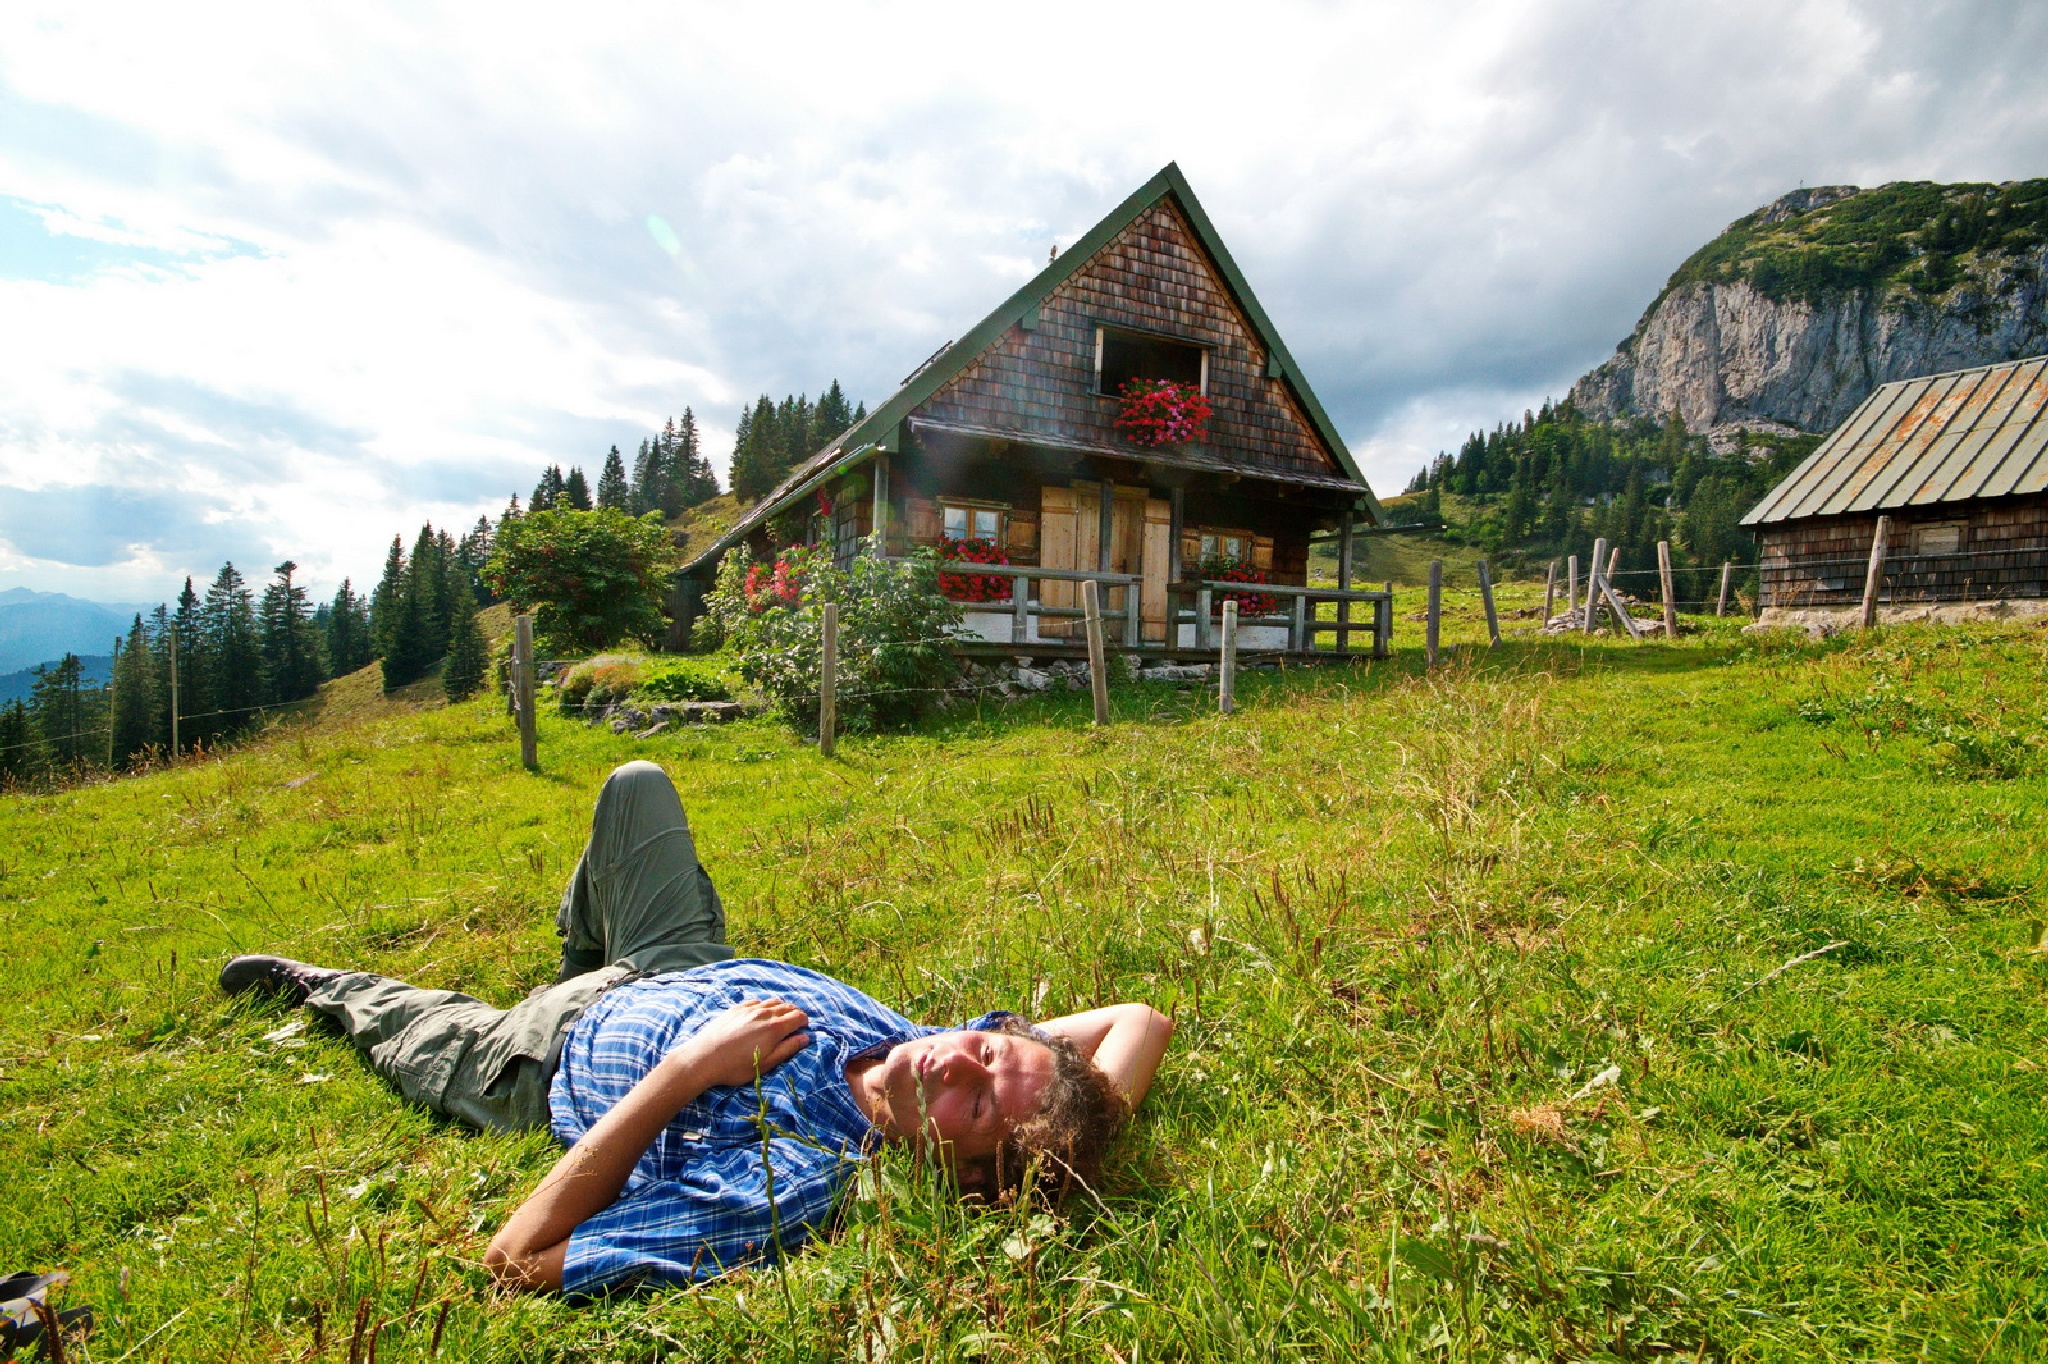 relaxing time by klaus.deischl